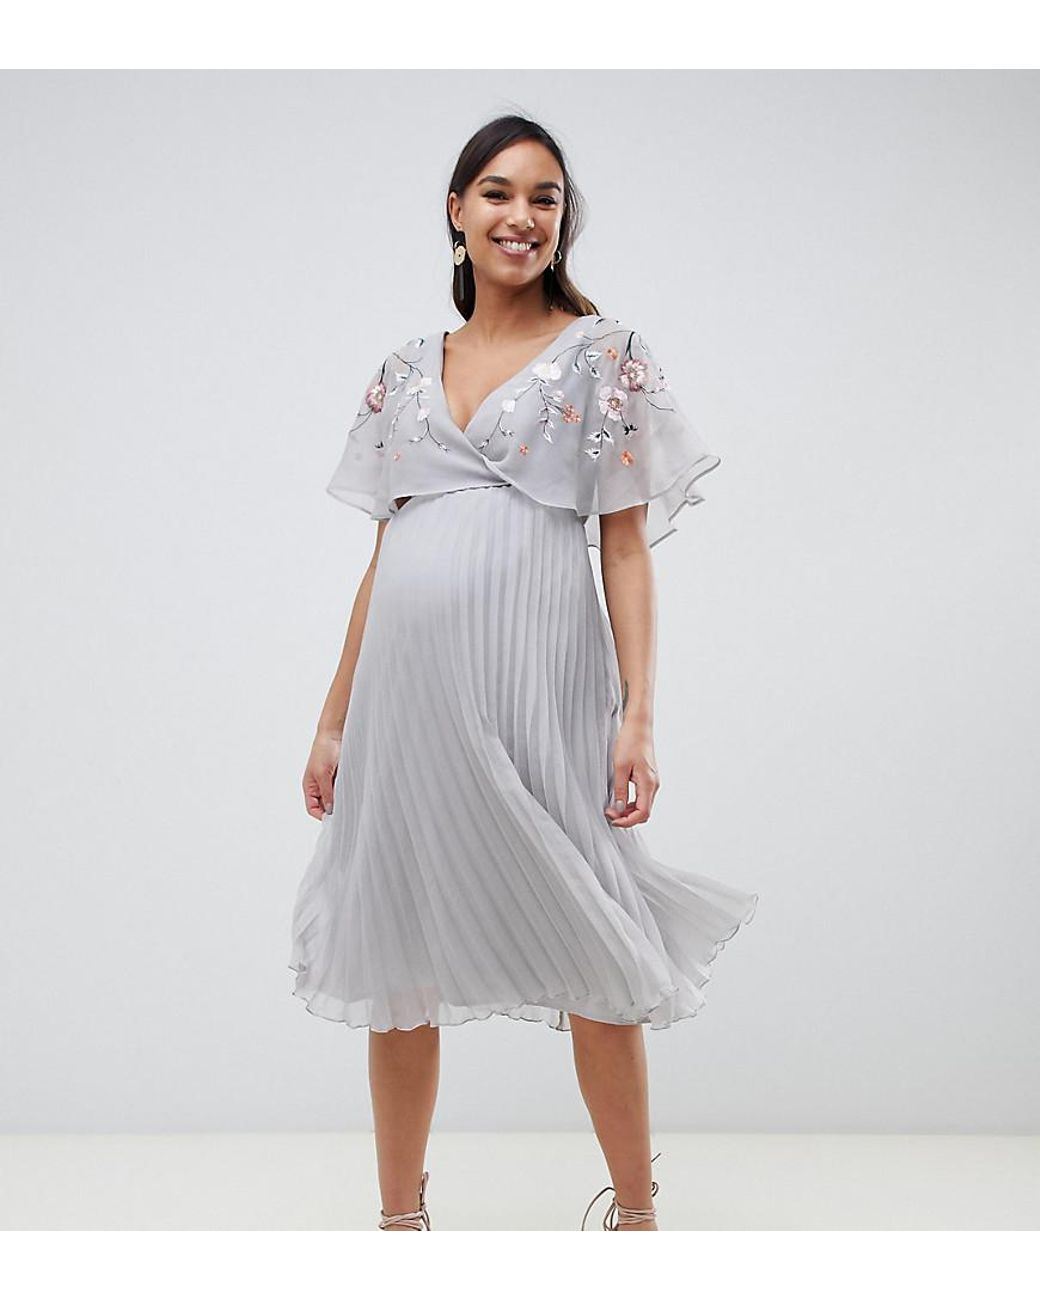 2b17b9243b388 ASOS Asos Design Maternity Flutter Sleeve Midi Dress With Pleat Skirt In  Embroidery in Gray - Lyst